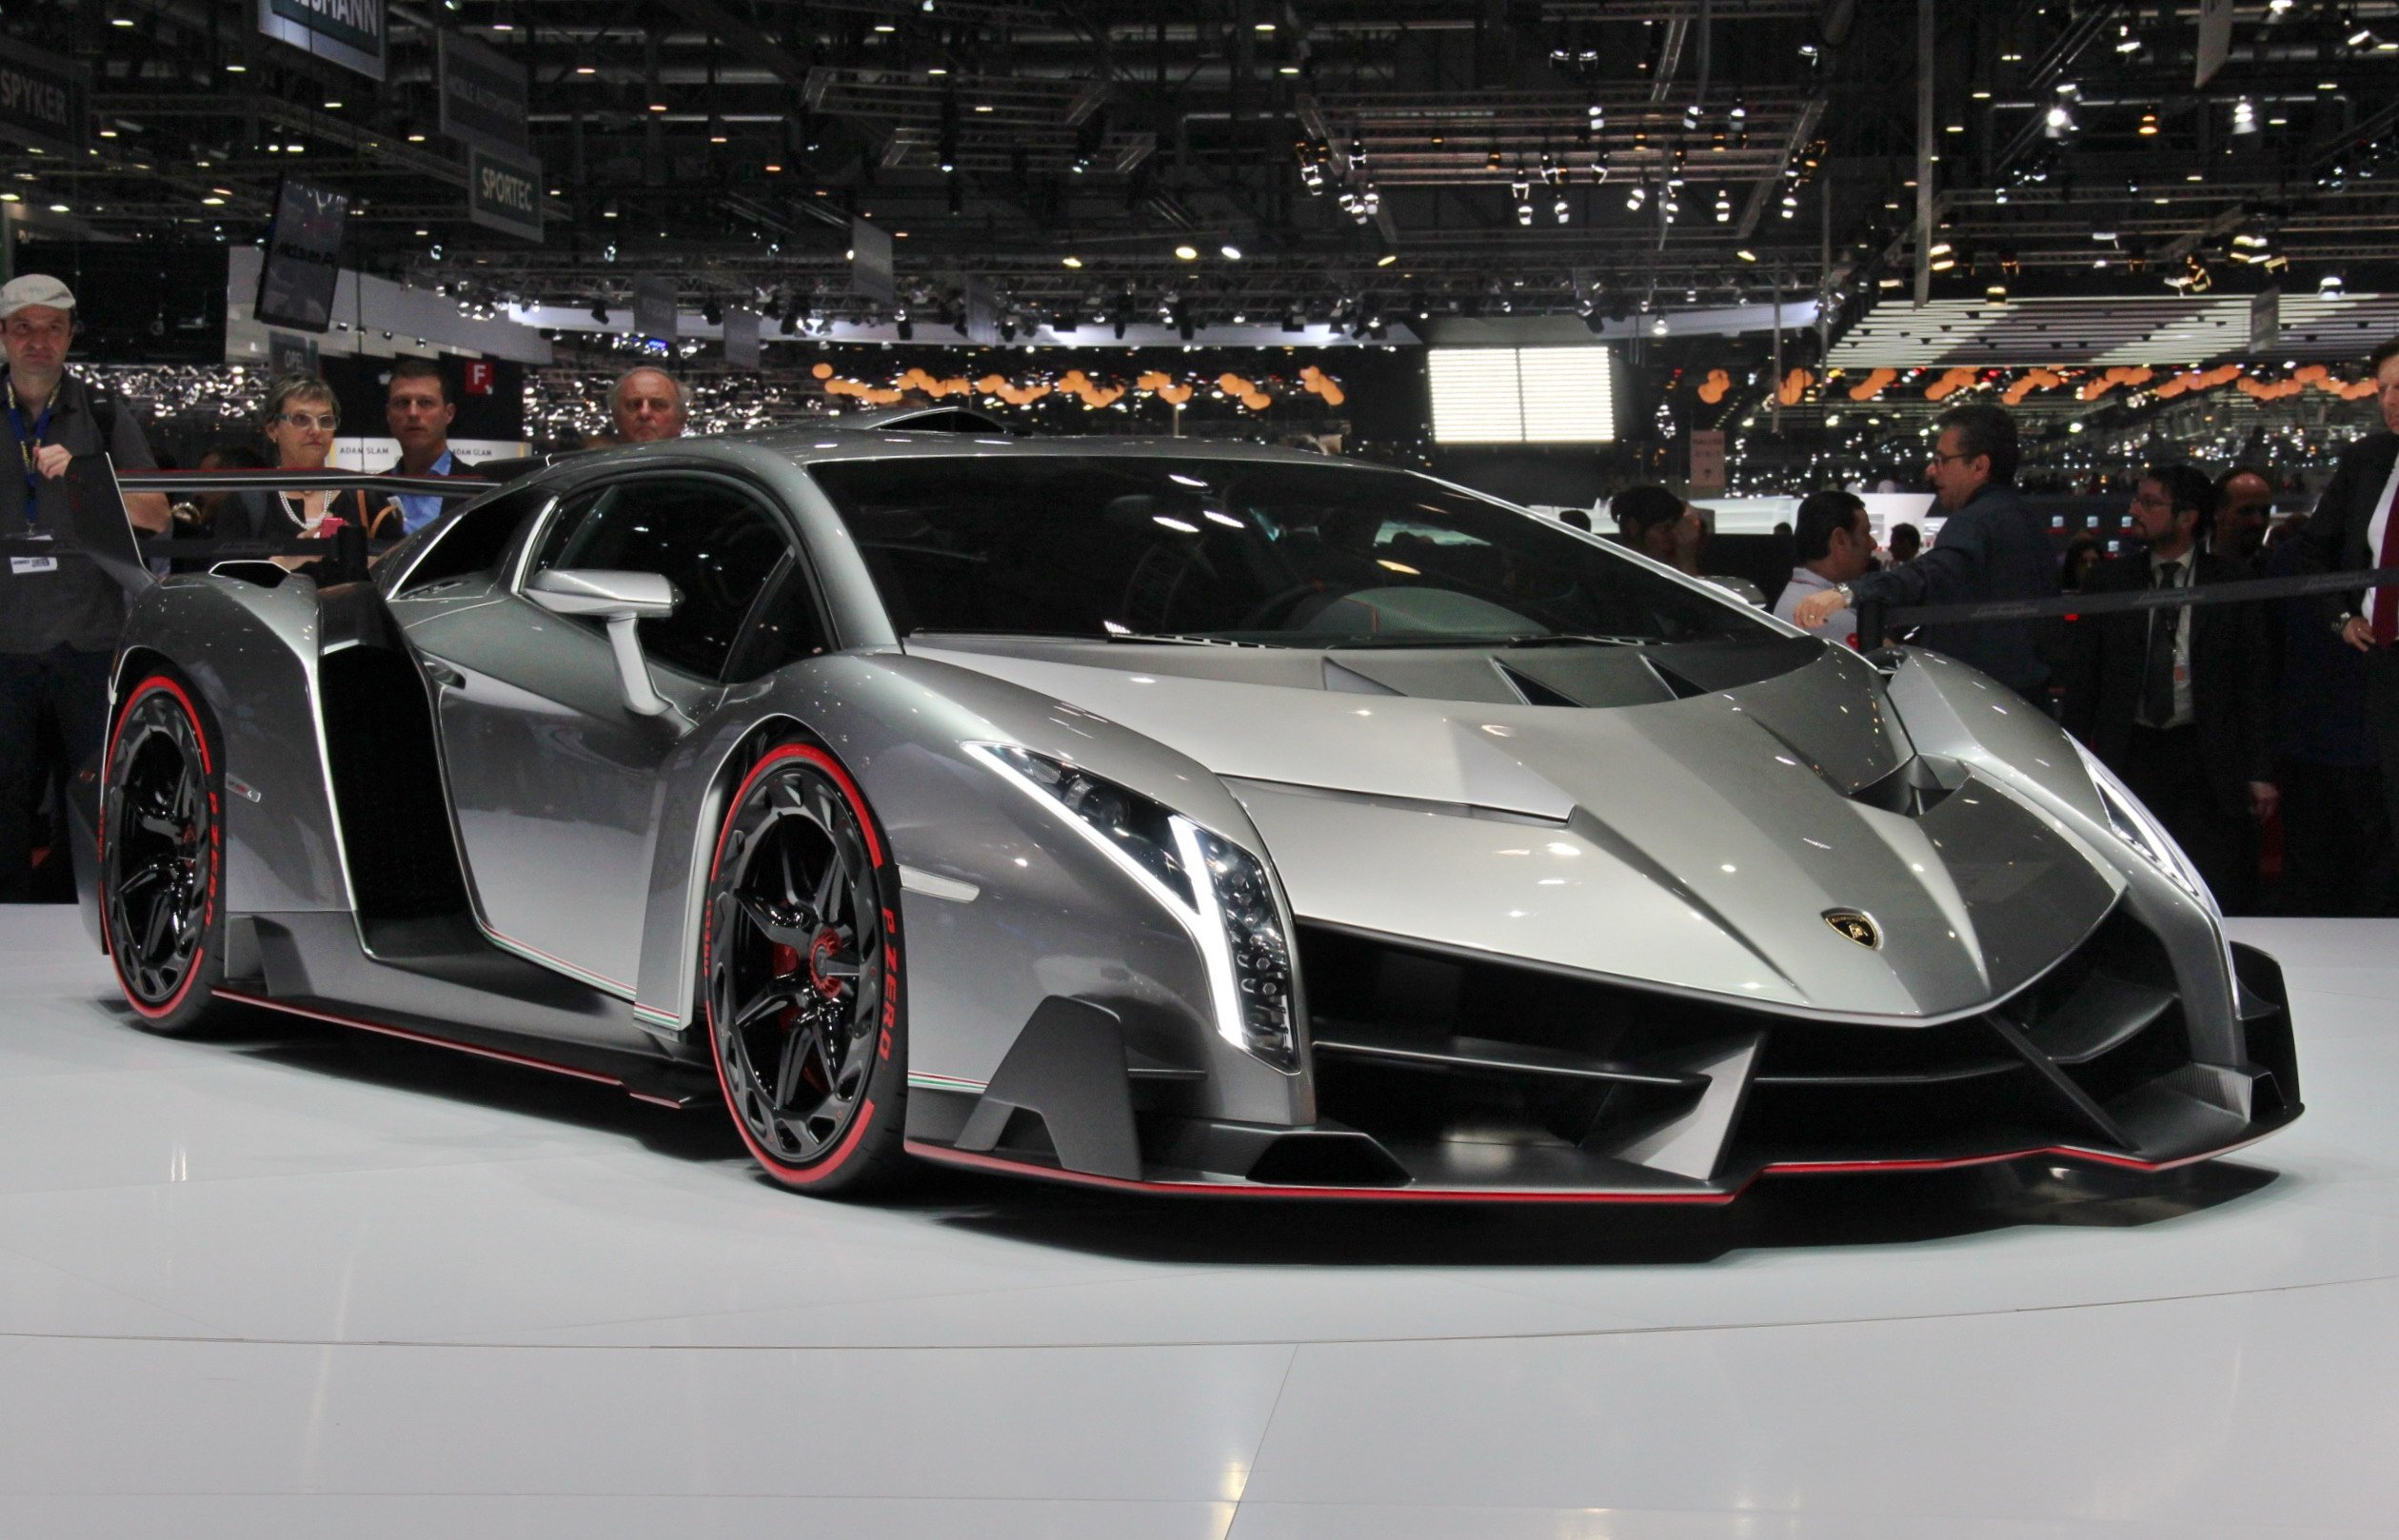 Lamborghini Veneno is one of the most expensive cars on earth